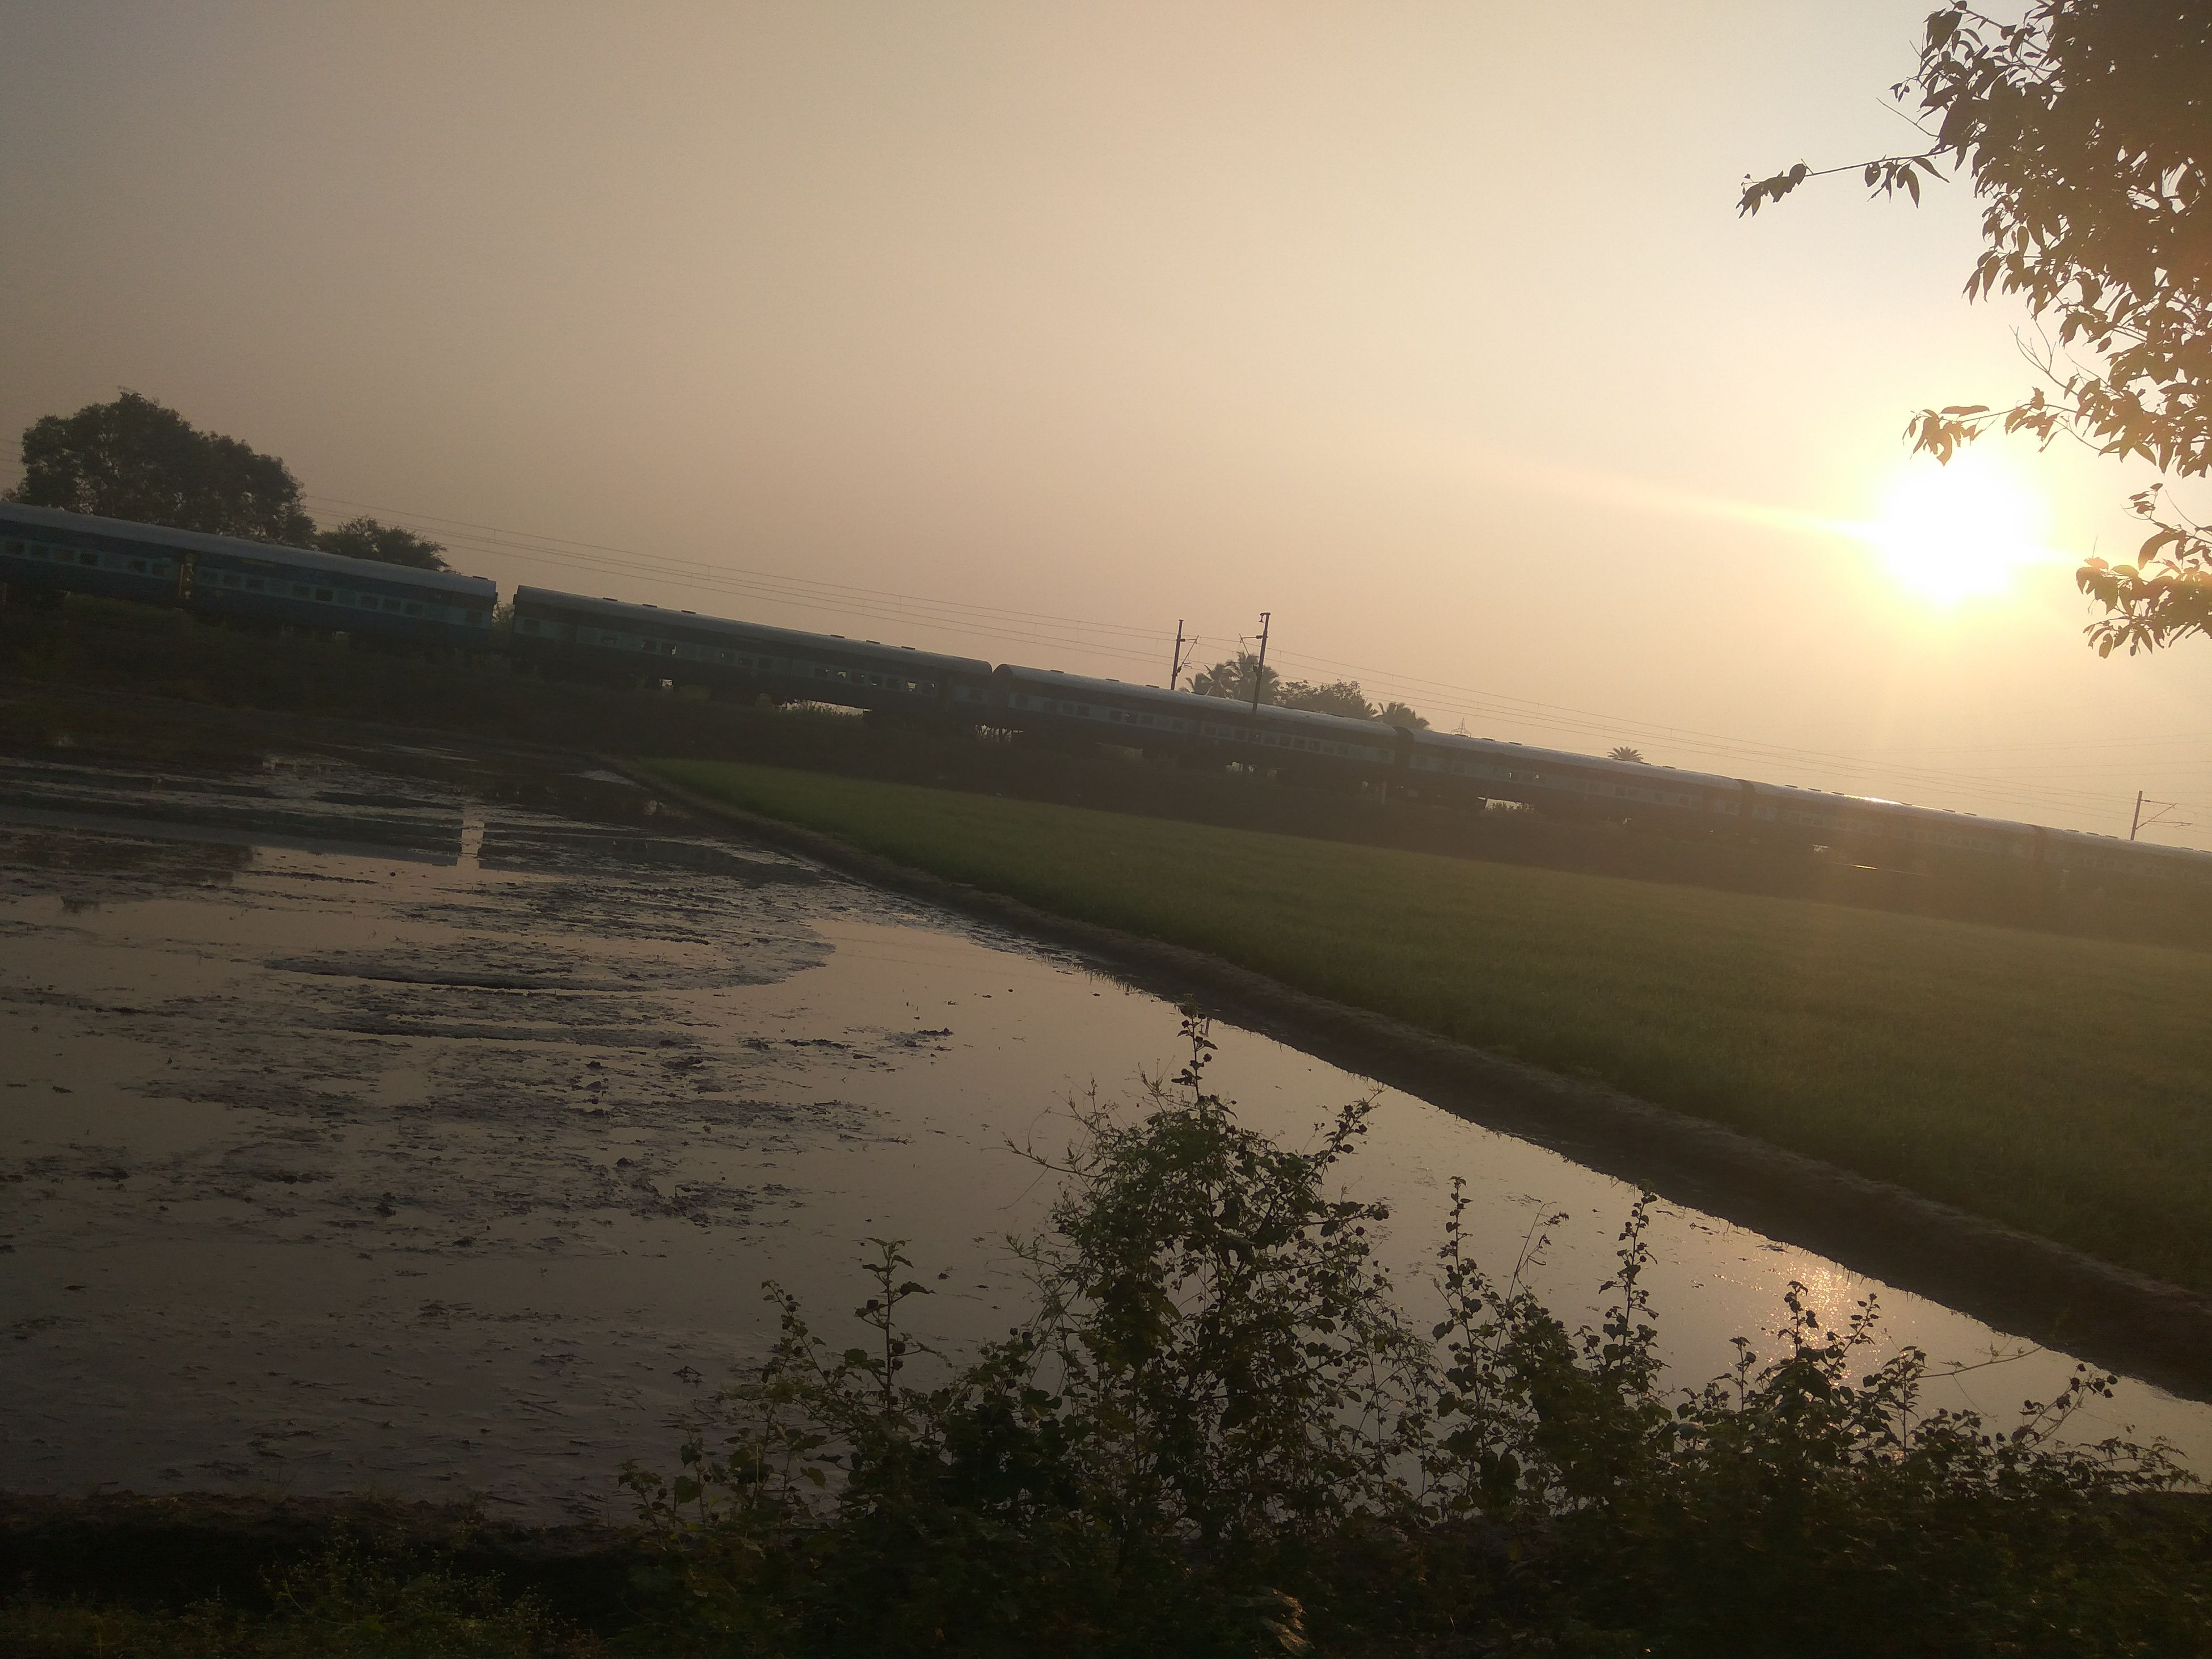 sunset, outdoors, agriculture, beauty in nature, sky, nature, landscape, scenics, rice paddy, sun, tree, water, people, day, golf course